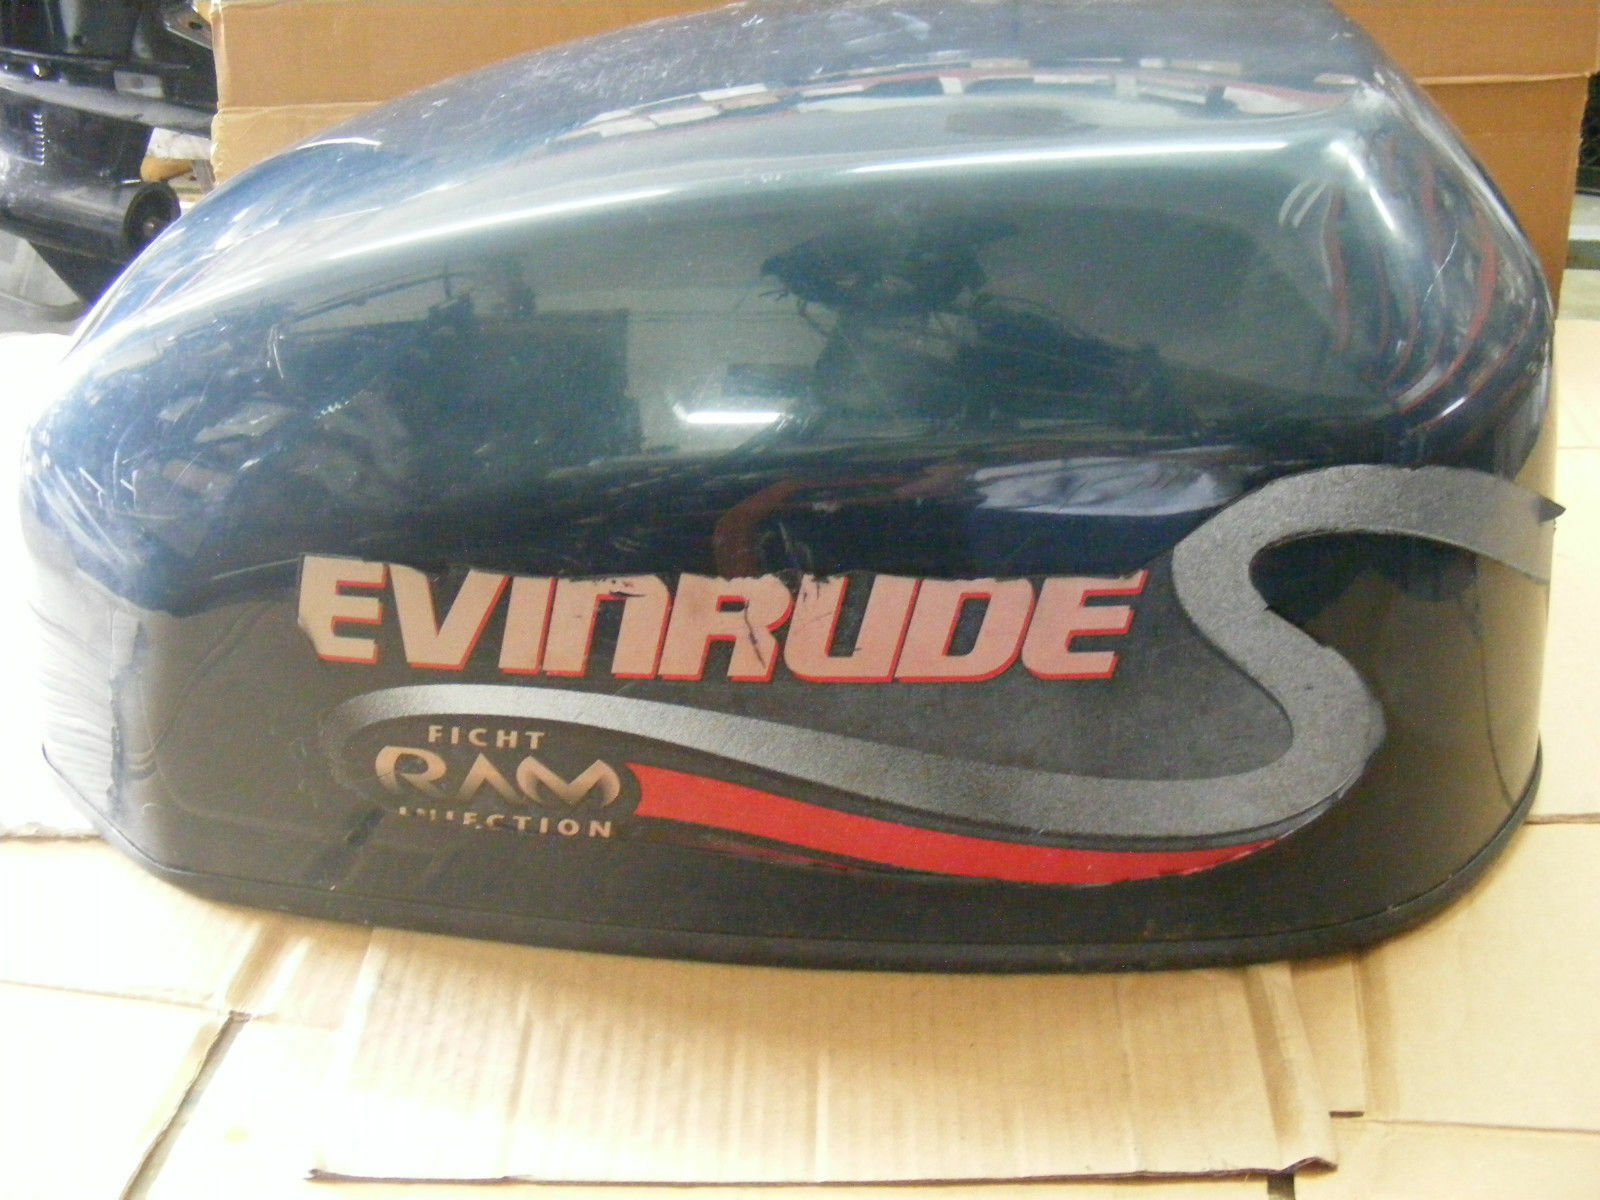 Johnson Evinrude 90-115 HP Ficht Ram Injection Engine Cover 285214 Outboard  1 of 9Only 1 available ...